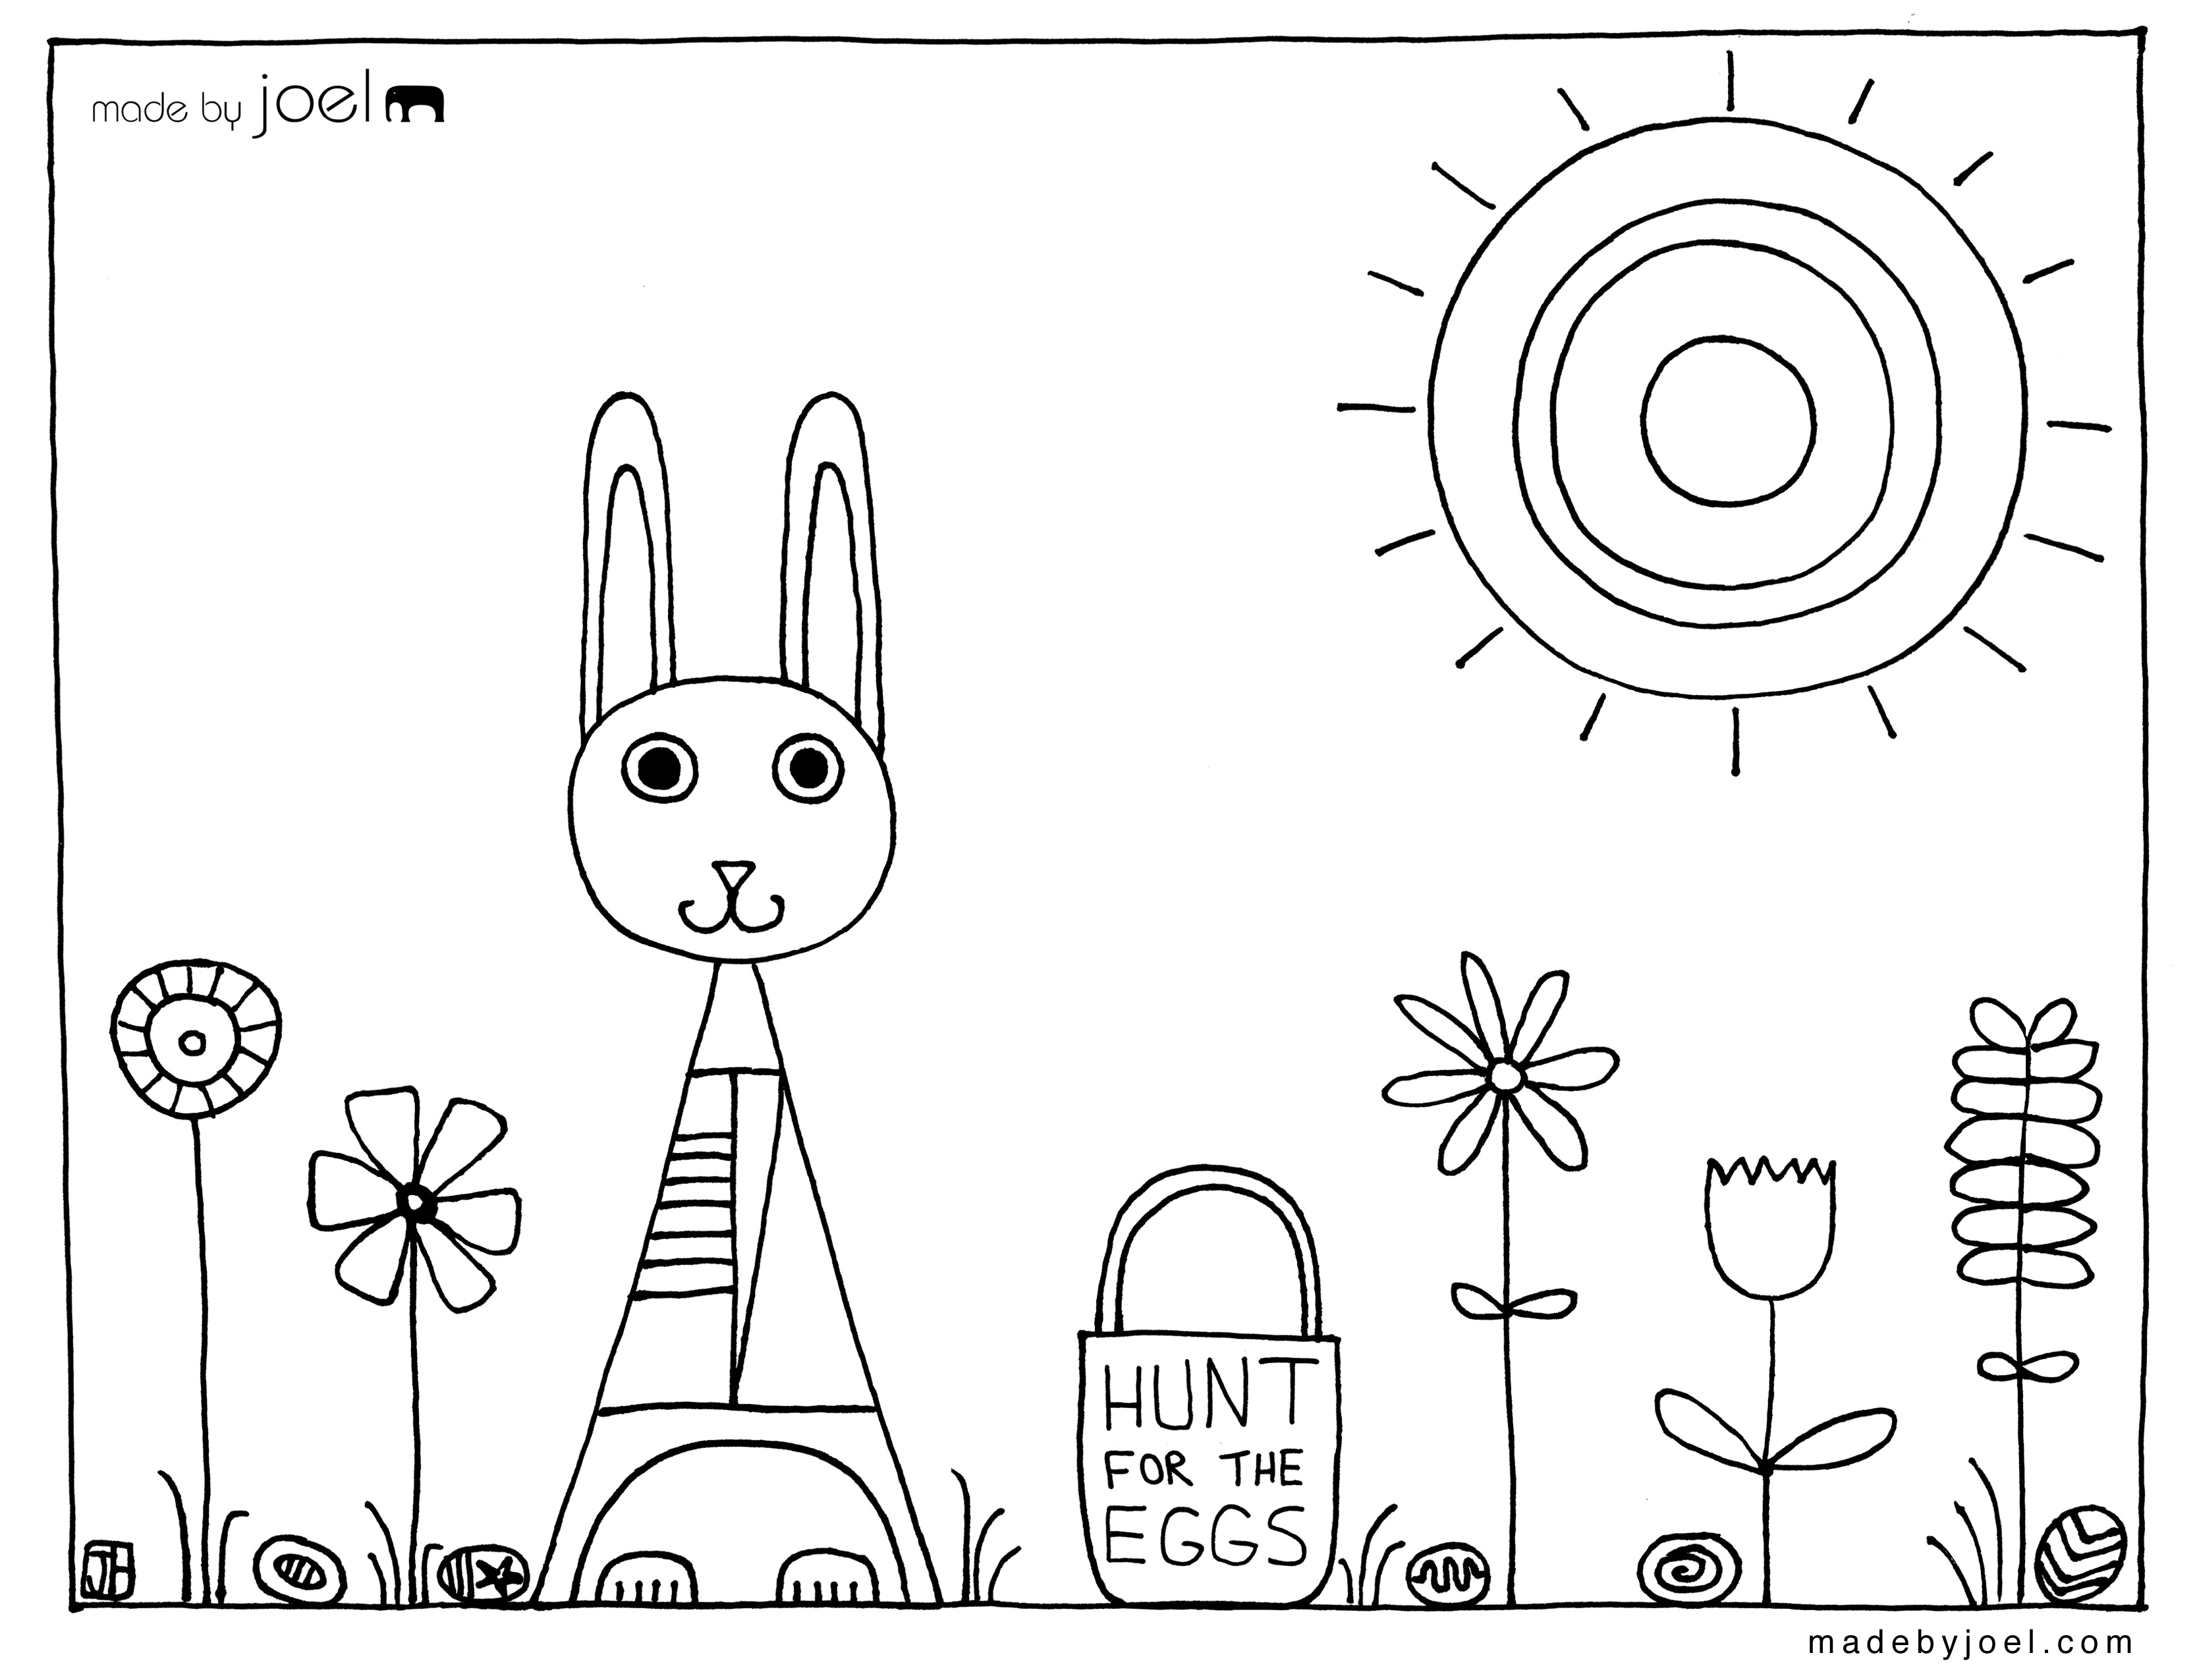 3335x2550 Easter Coloring Pages For Middle School Made Joel Easter Coloring